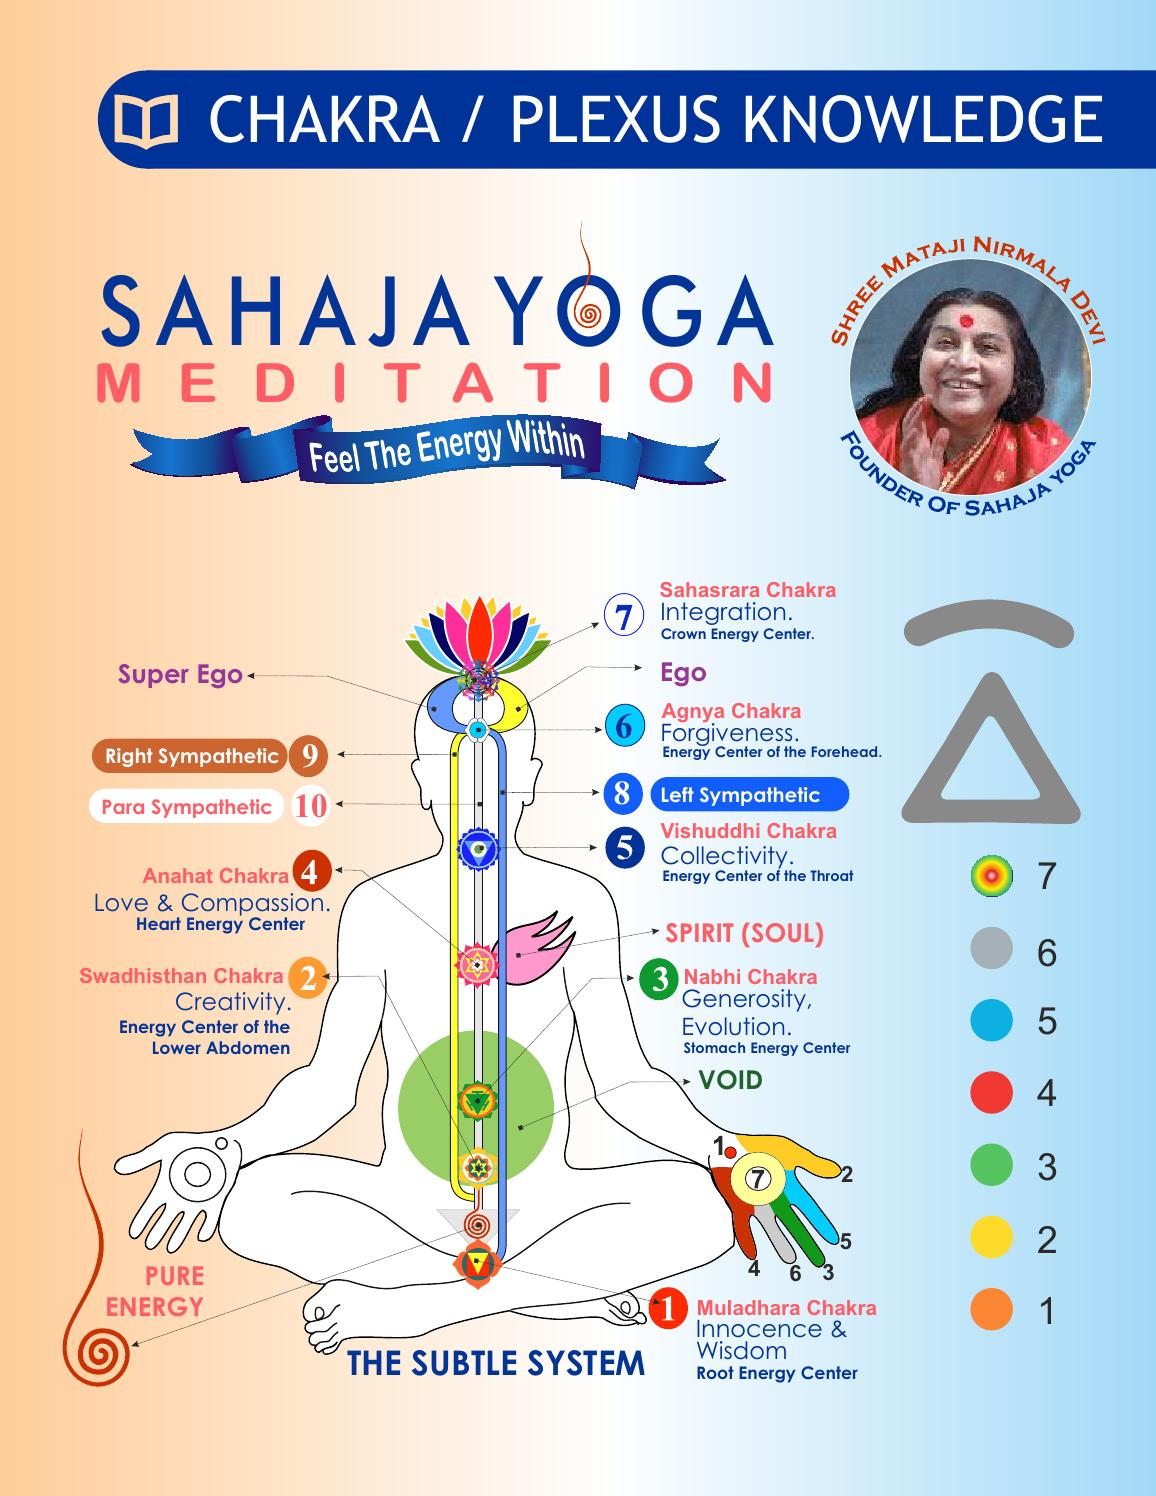 7 Chakra Plexus Knowledge By Sahaja Yoga Meditation Issuu